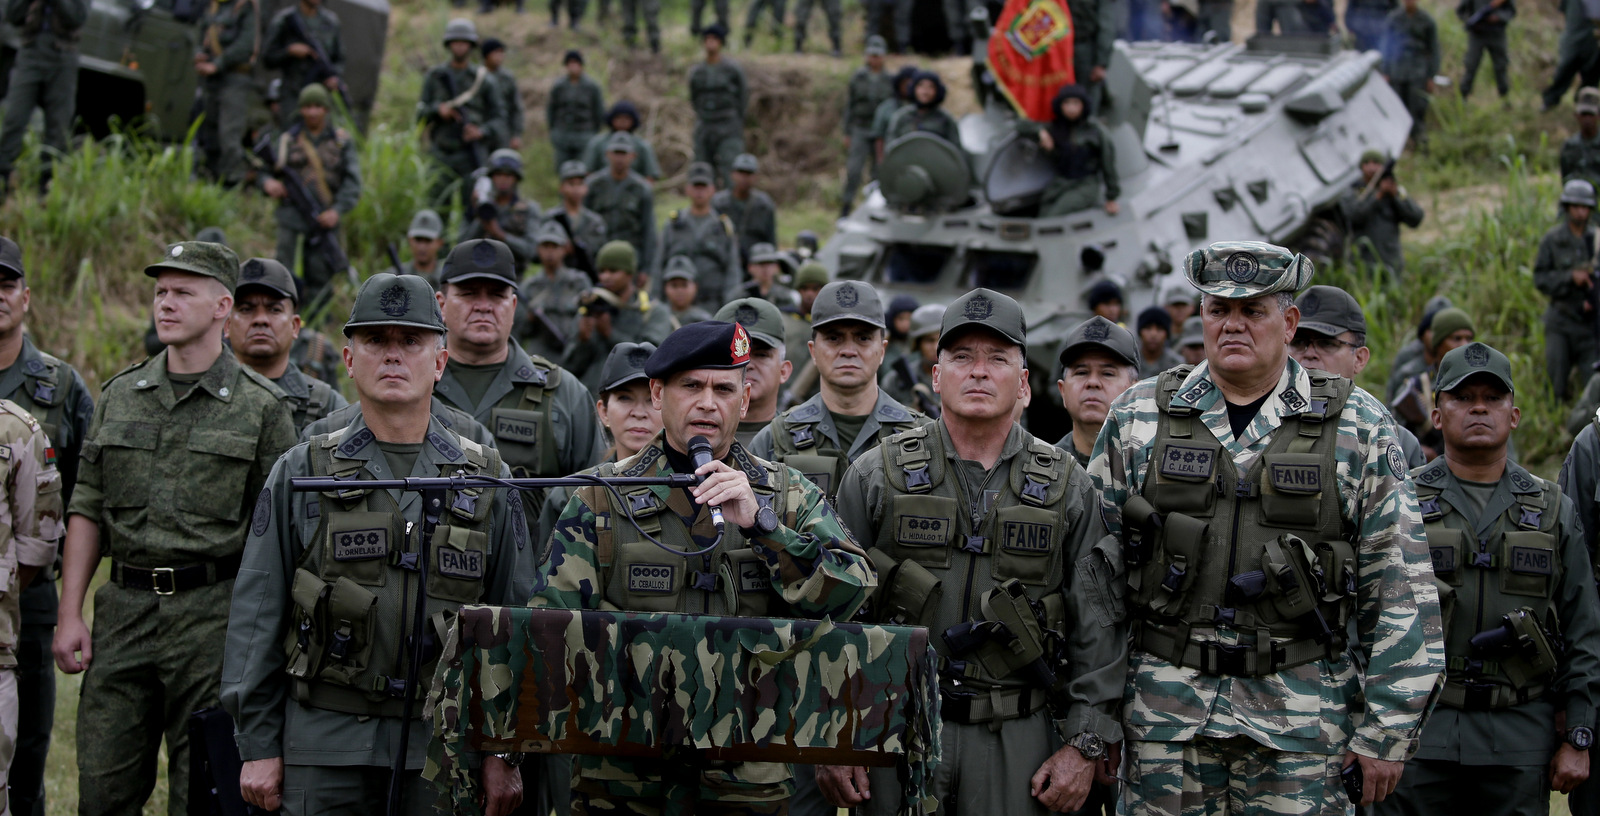 Venezuelan military suppresses and thwarts attempted illegal entry from Colombia